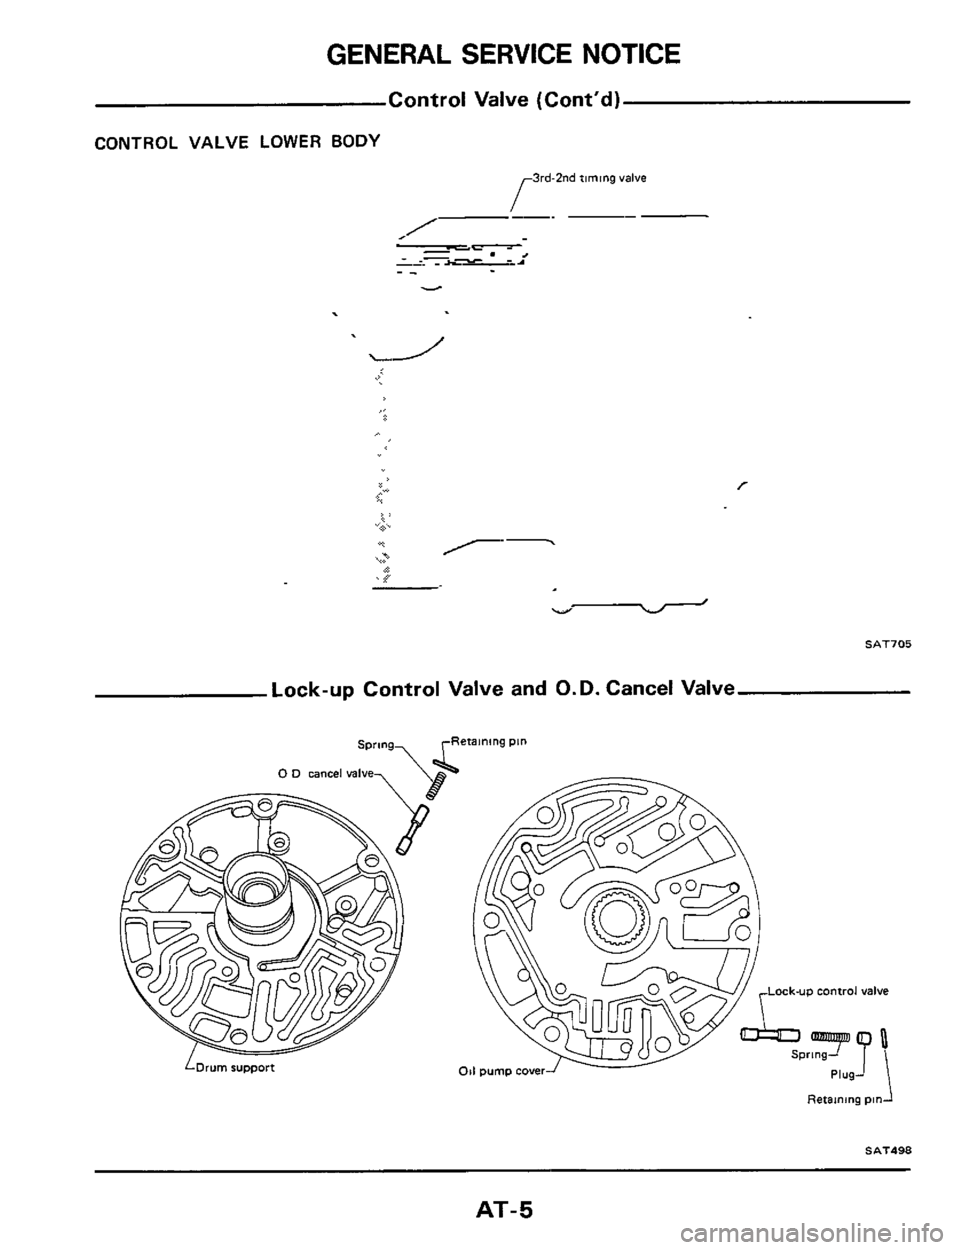 NISSAN 300ZX 1984 Z31 Automatic Transmission Workshop Manual, Page 5